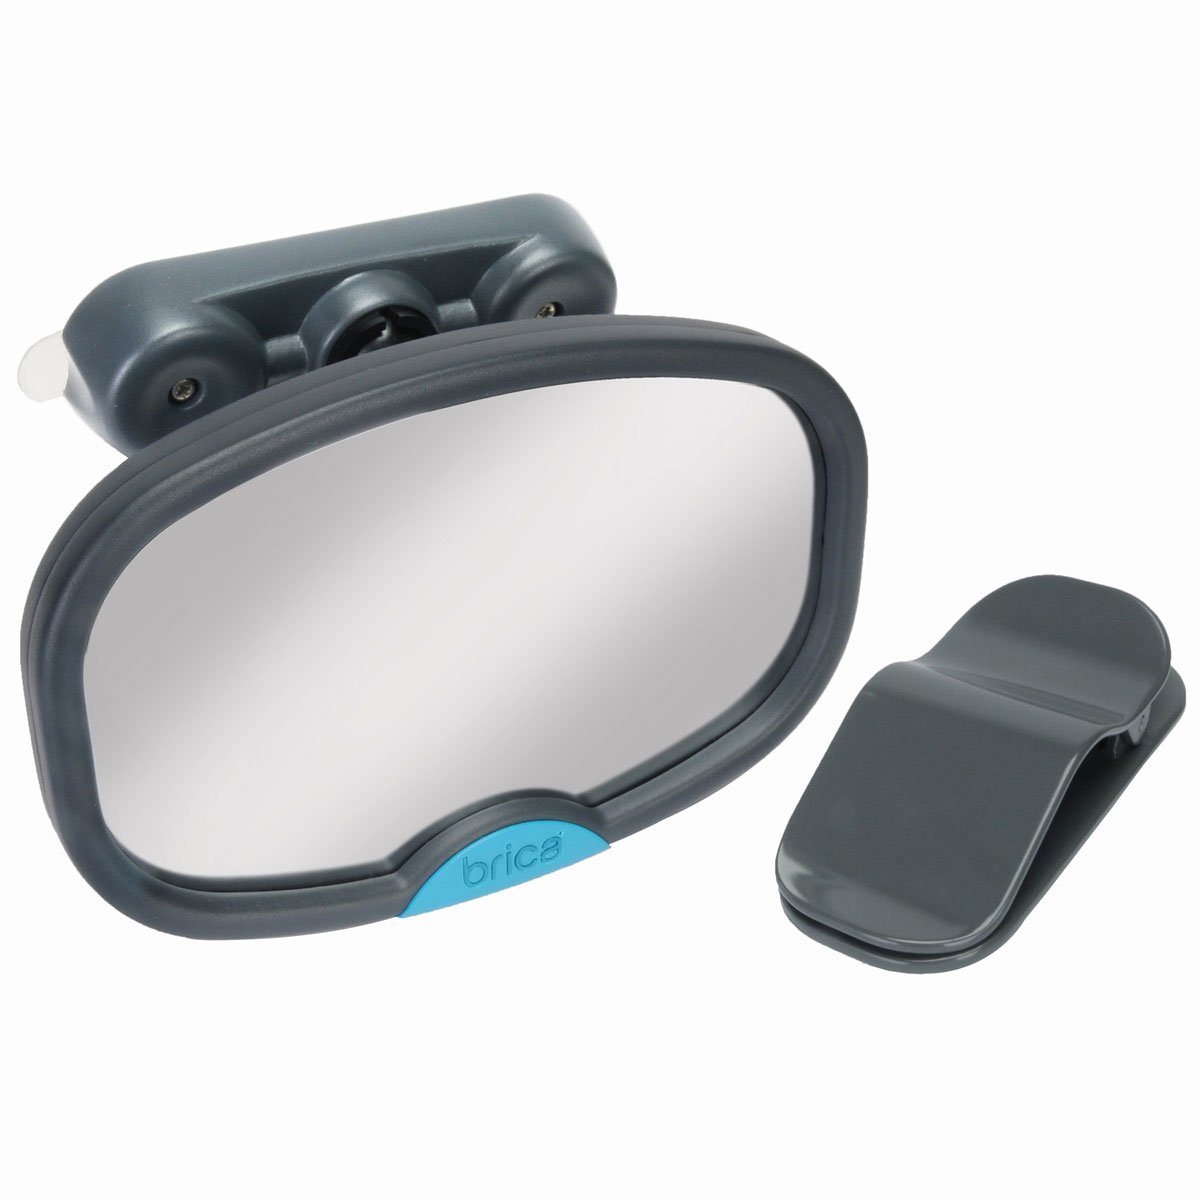 Munchkin BRICA Deluxe Stay-in-Place Mirror for in Car Safety, Grey 63015